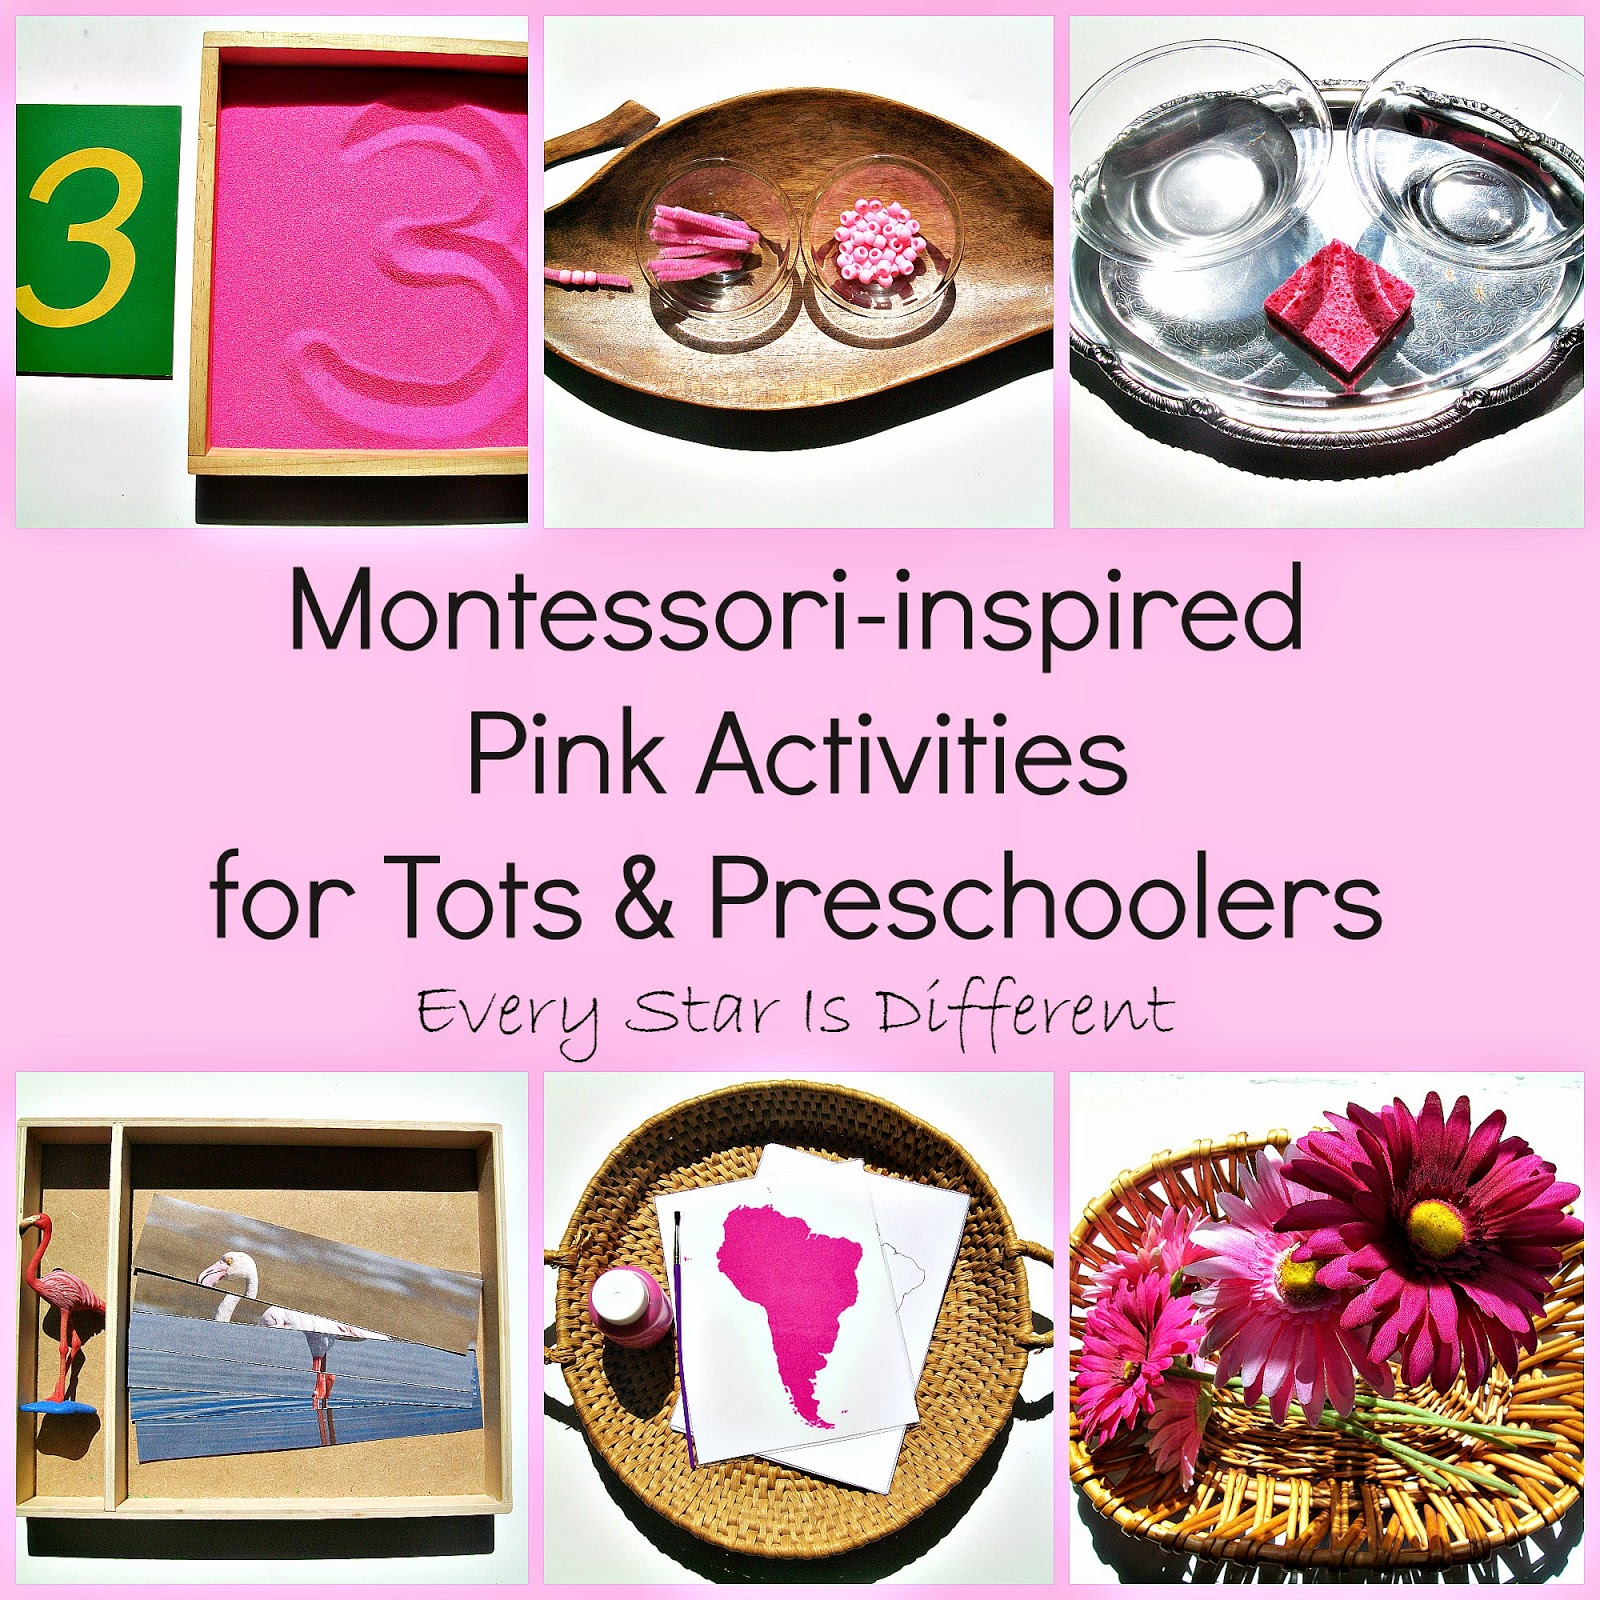 Montessori-inspired Pink Activities